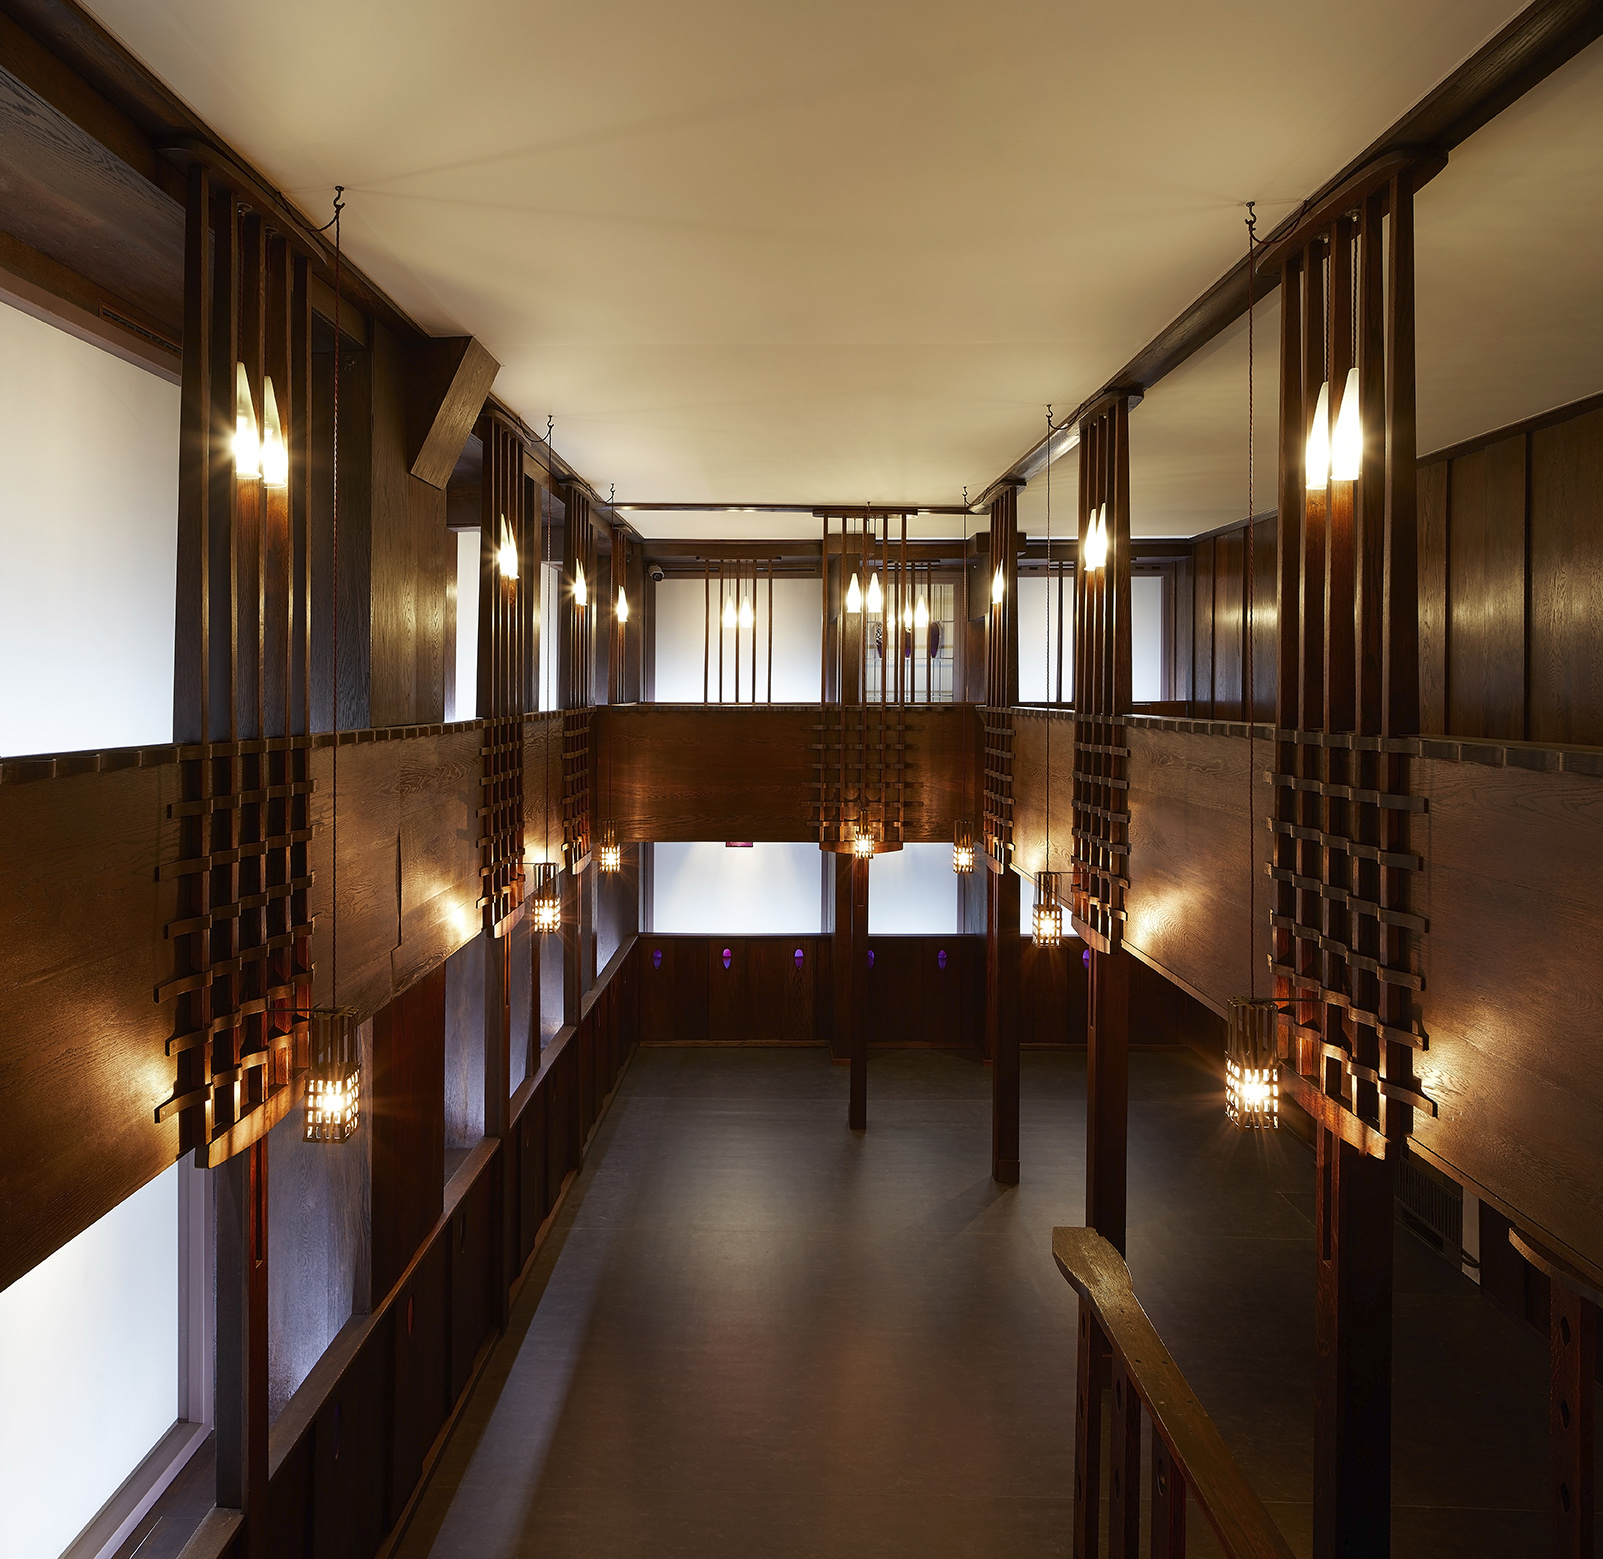 Charles Rennie Mackintosh's Oak Room restored, conserved and reconstructed through a partnership between V&A Dundee, Glasgow Museums and Dundee City Council.